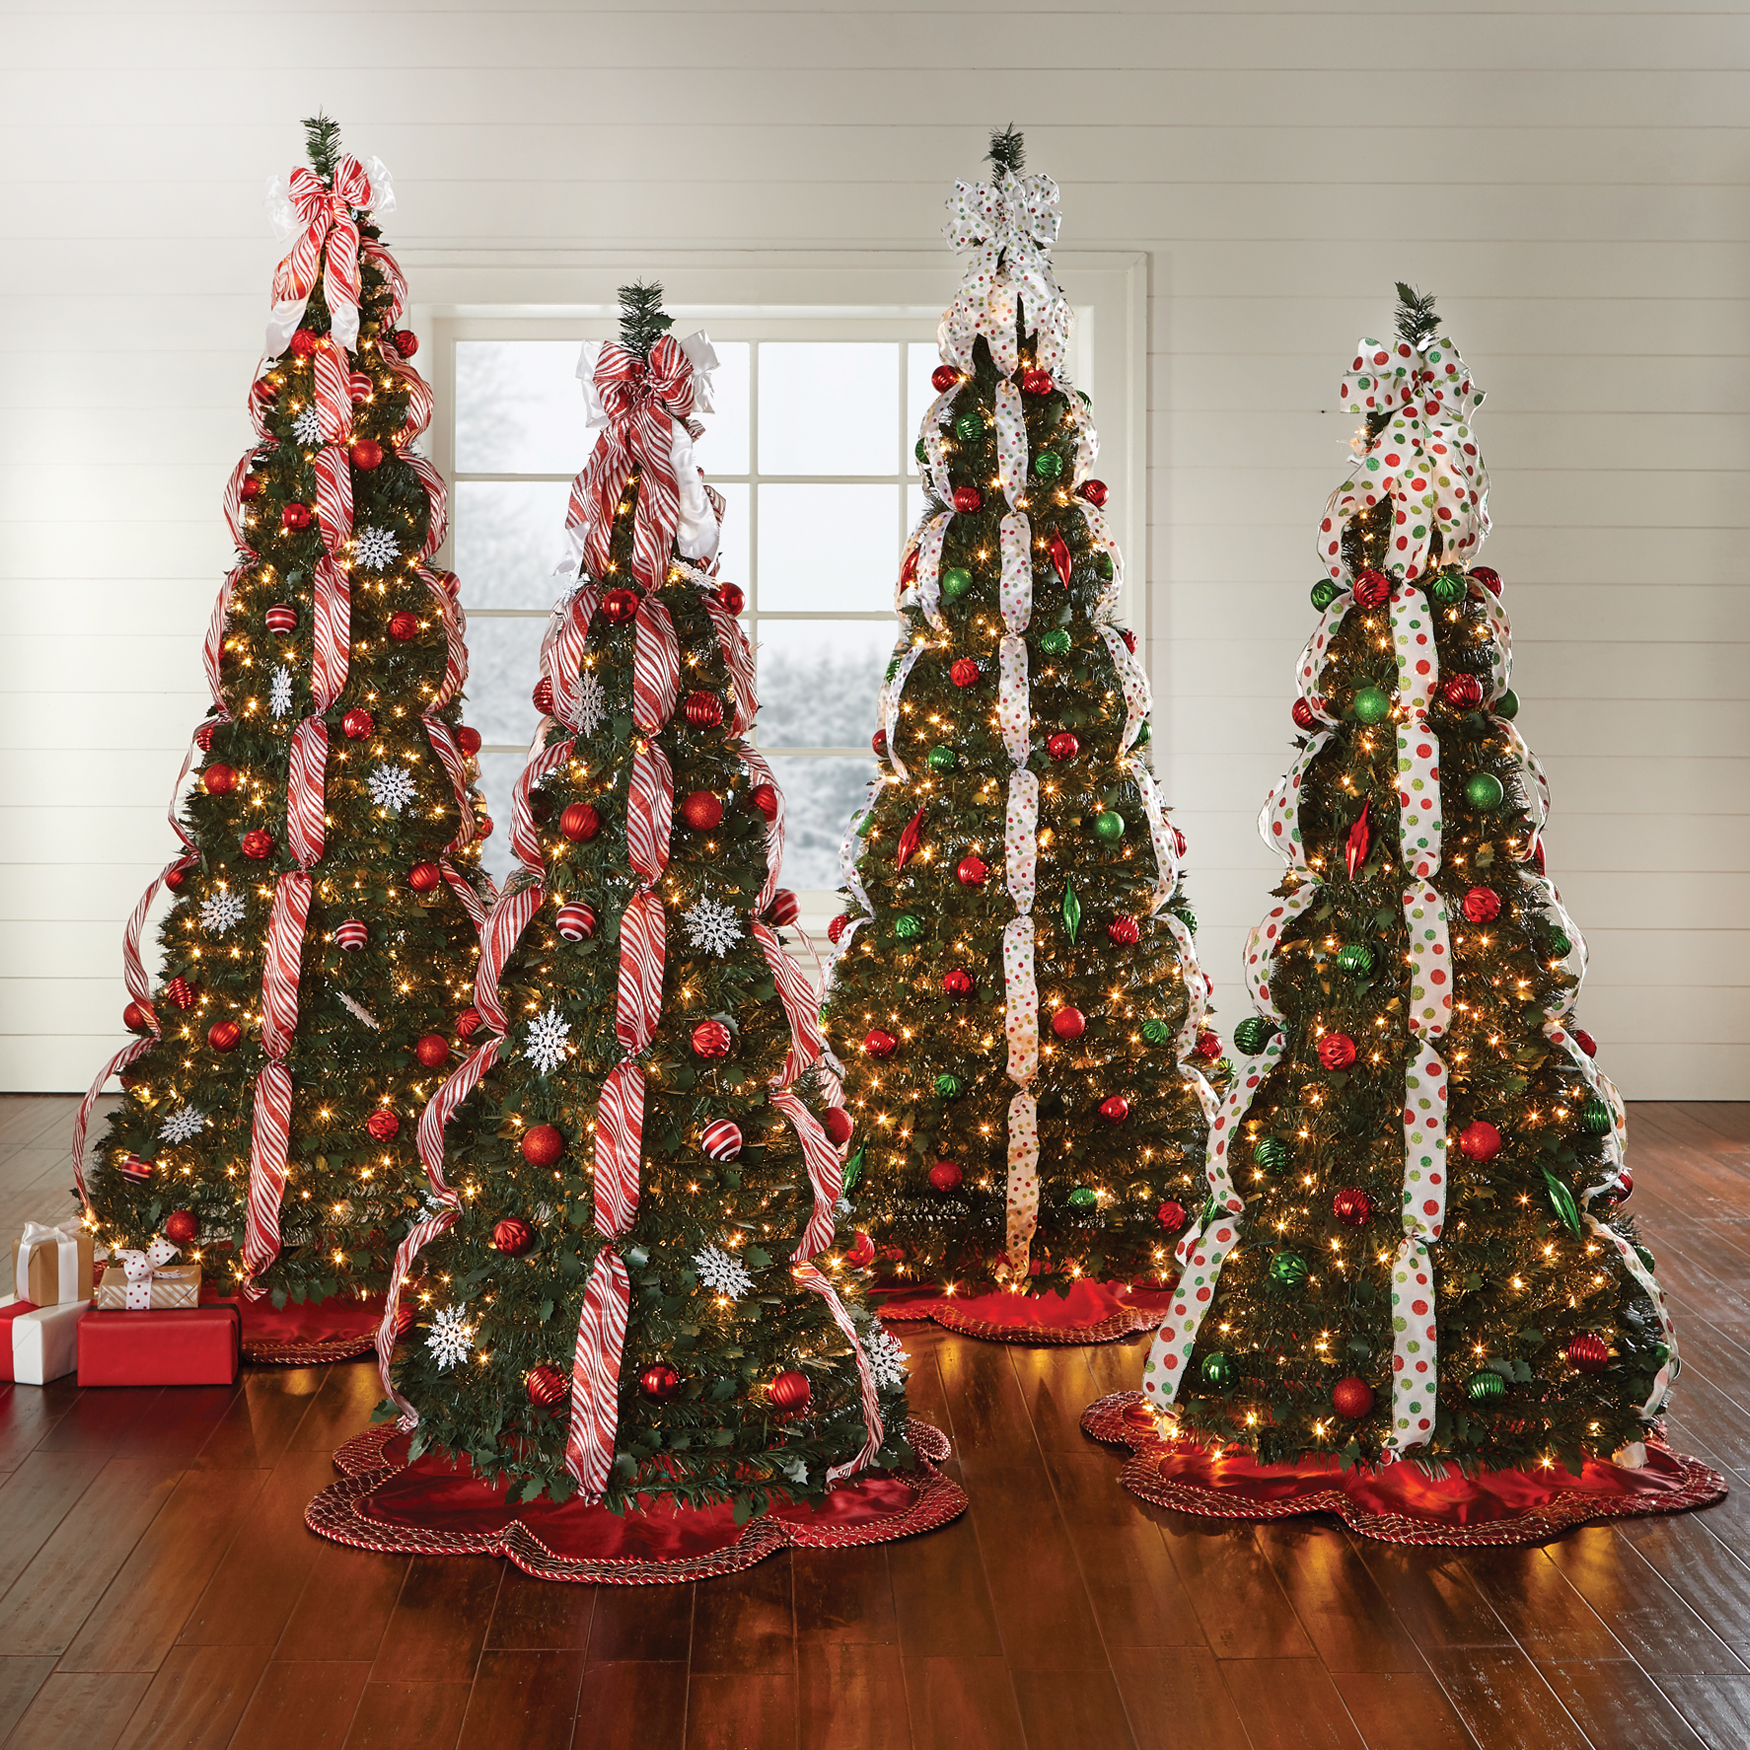 BrylaneHome Christmas Fully Decorated Pre-Lit 6-Ft. Pop-Up ...